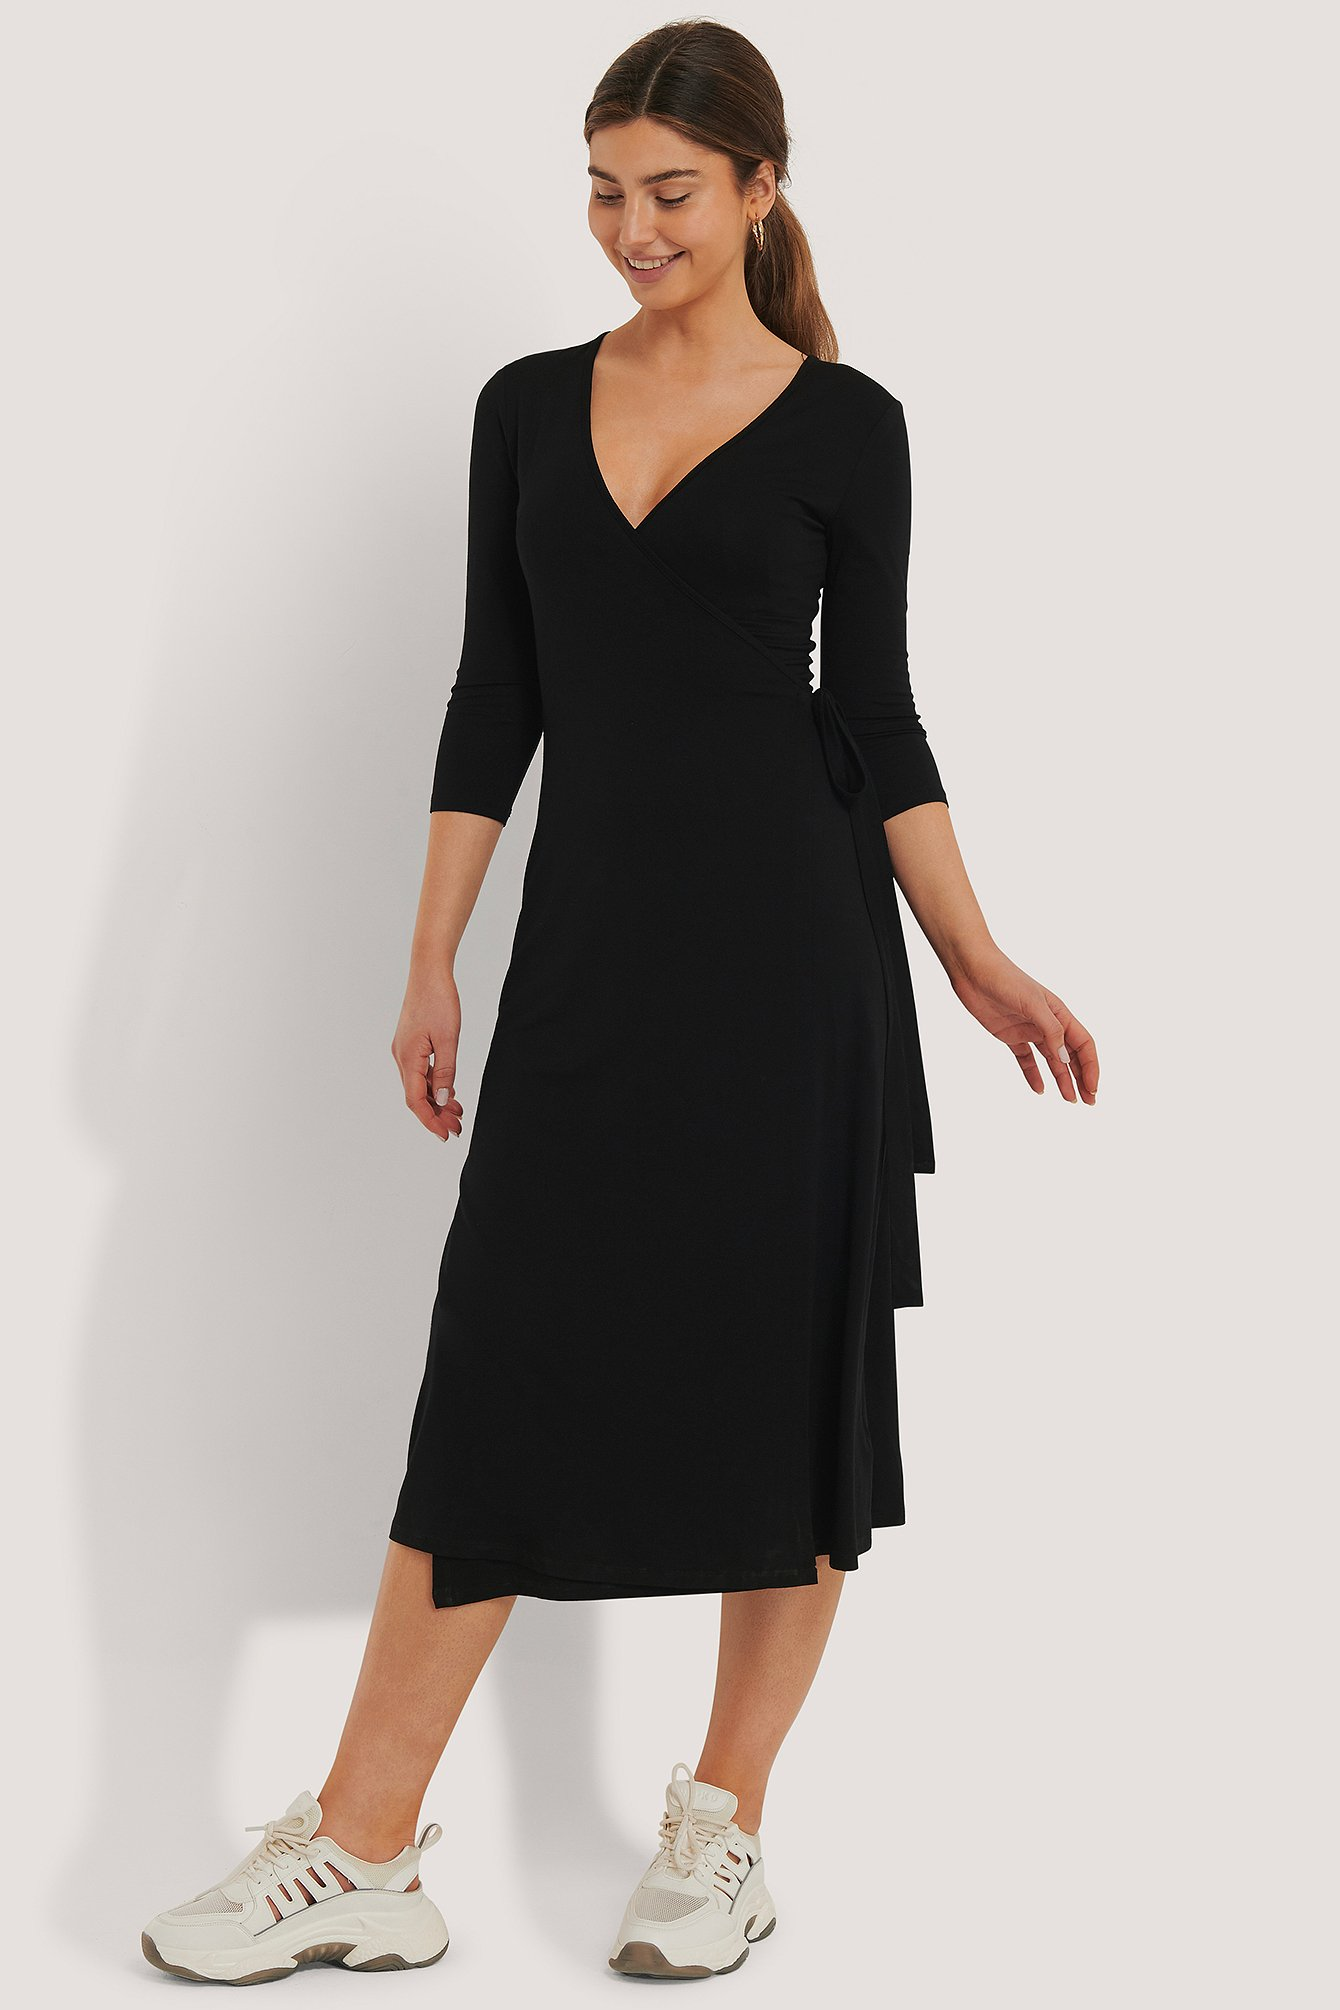 Black Overlap Tie Dress